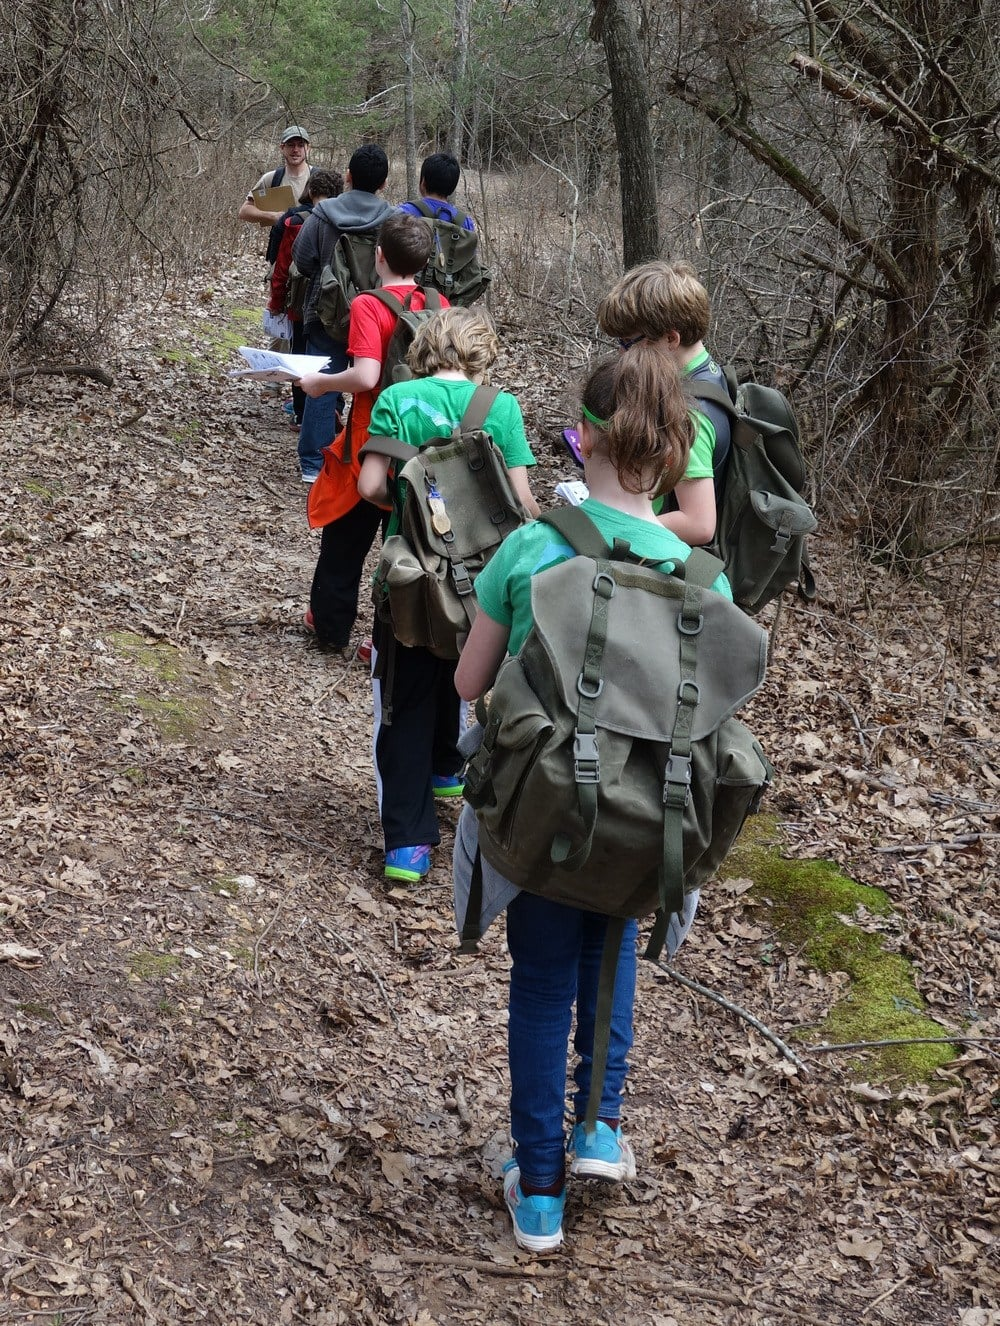 Being a teacher naturalist at the Ozark Natural Science Center has been a great learning experience and a perfect excuse to explore the Ozarks.